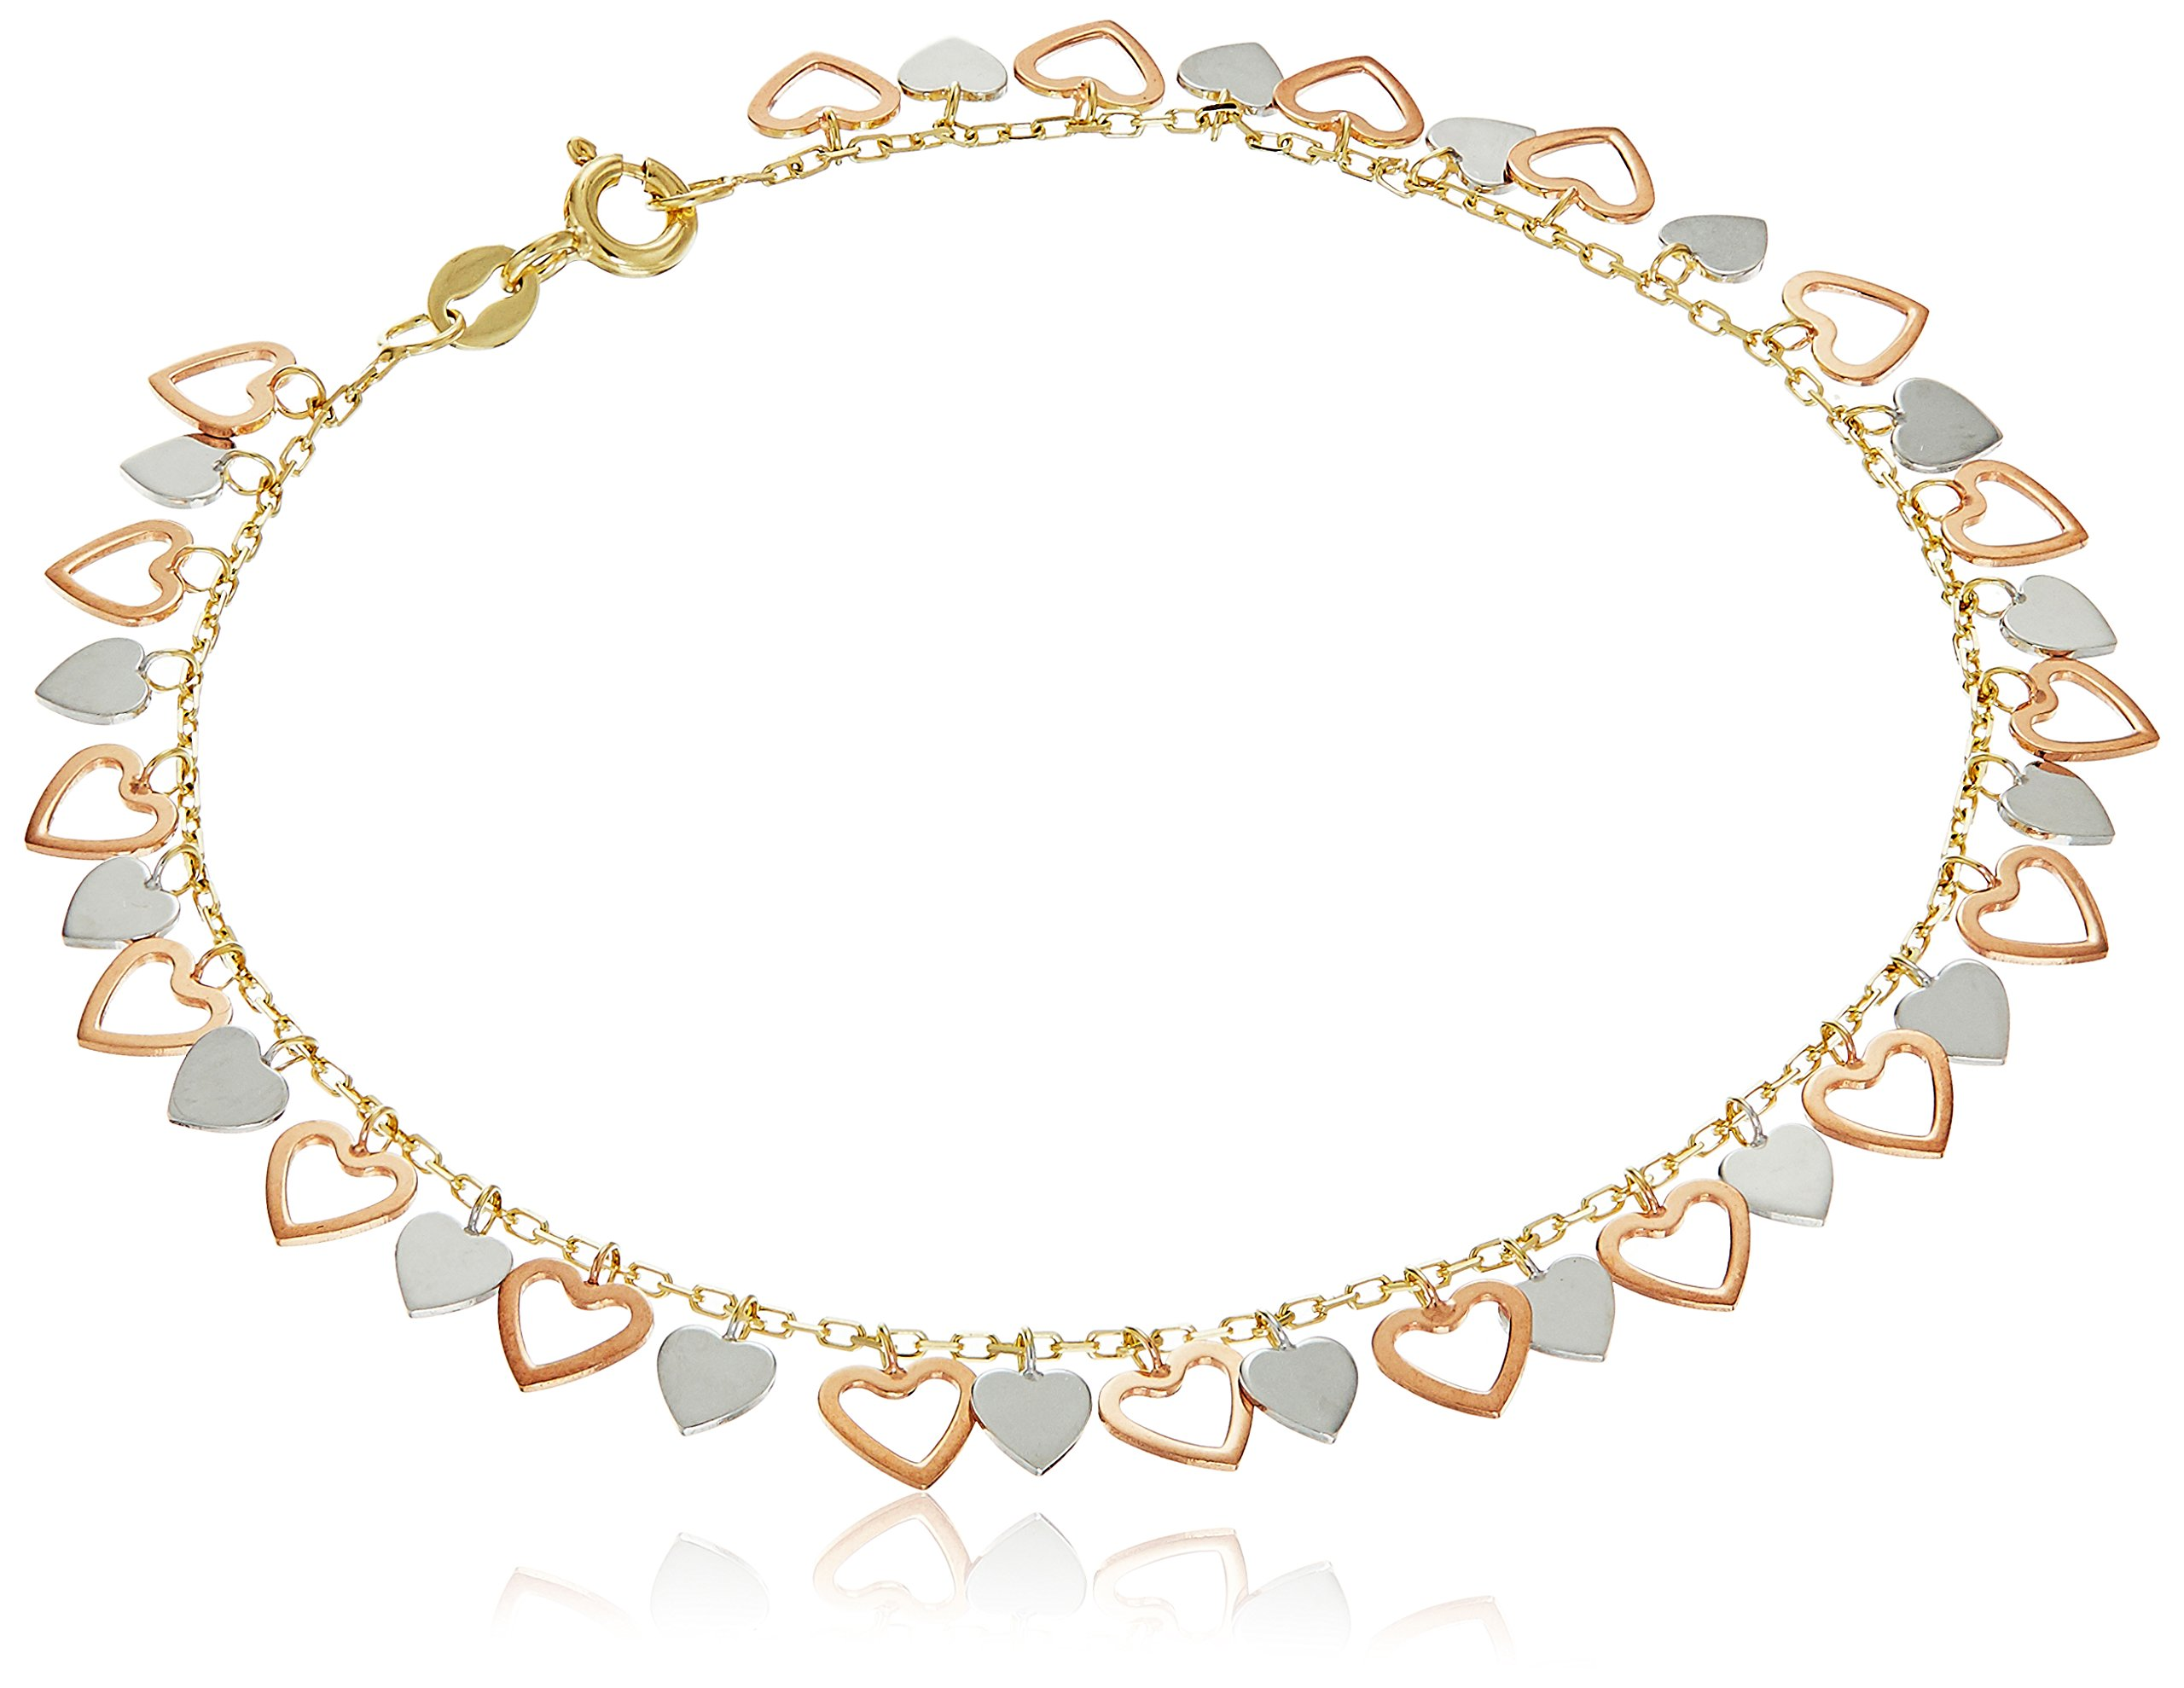 10k White, Yellow and Rose Gold Hearts Charm Bracelet, 7.5''